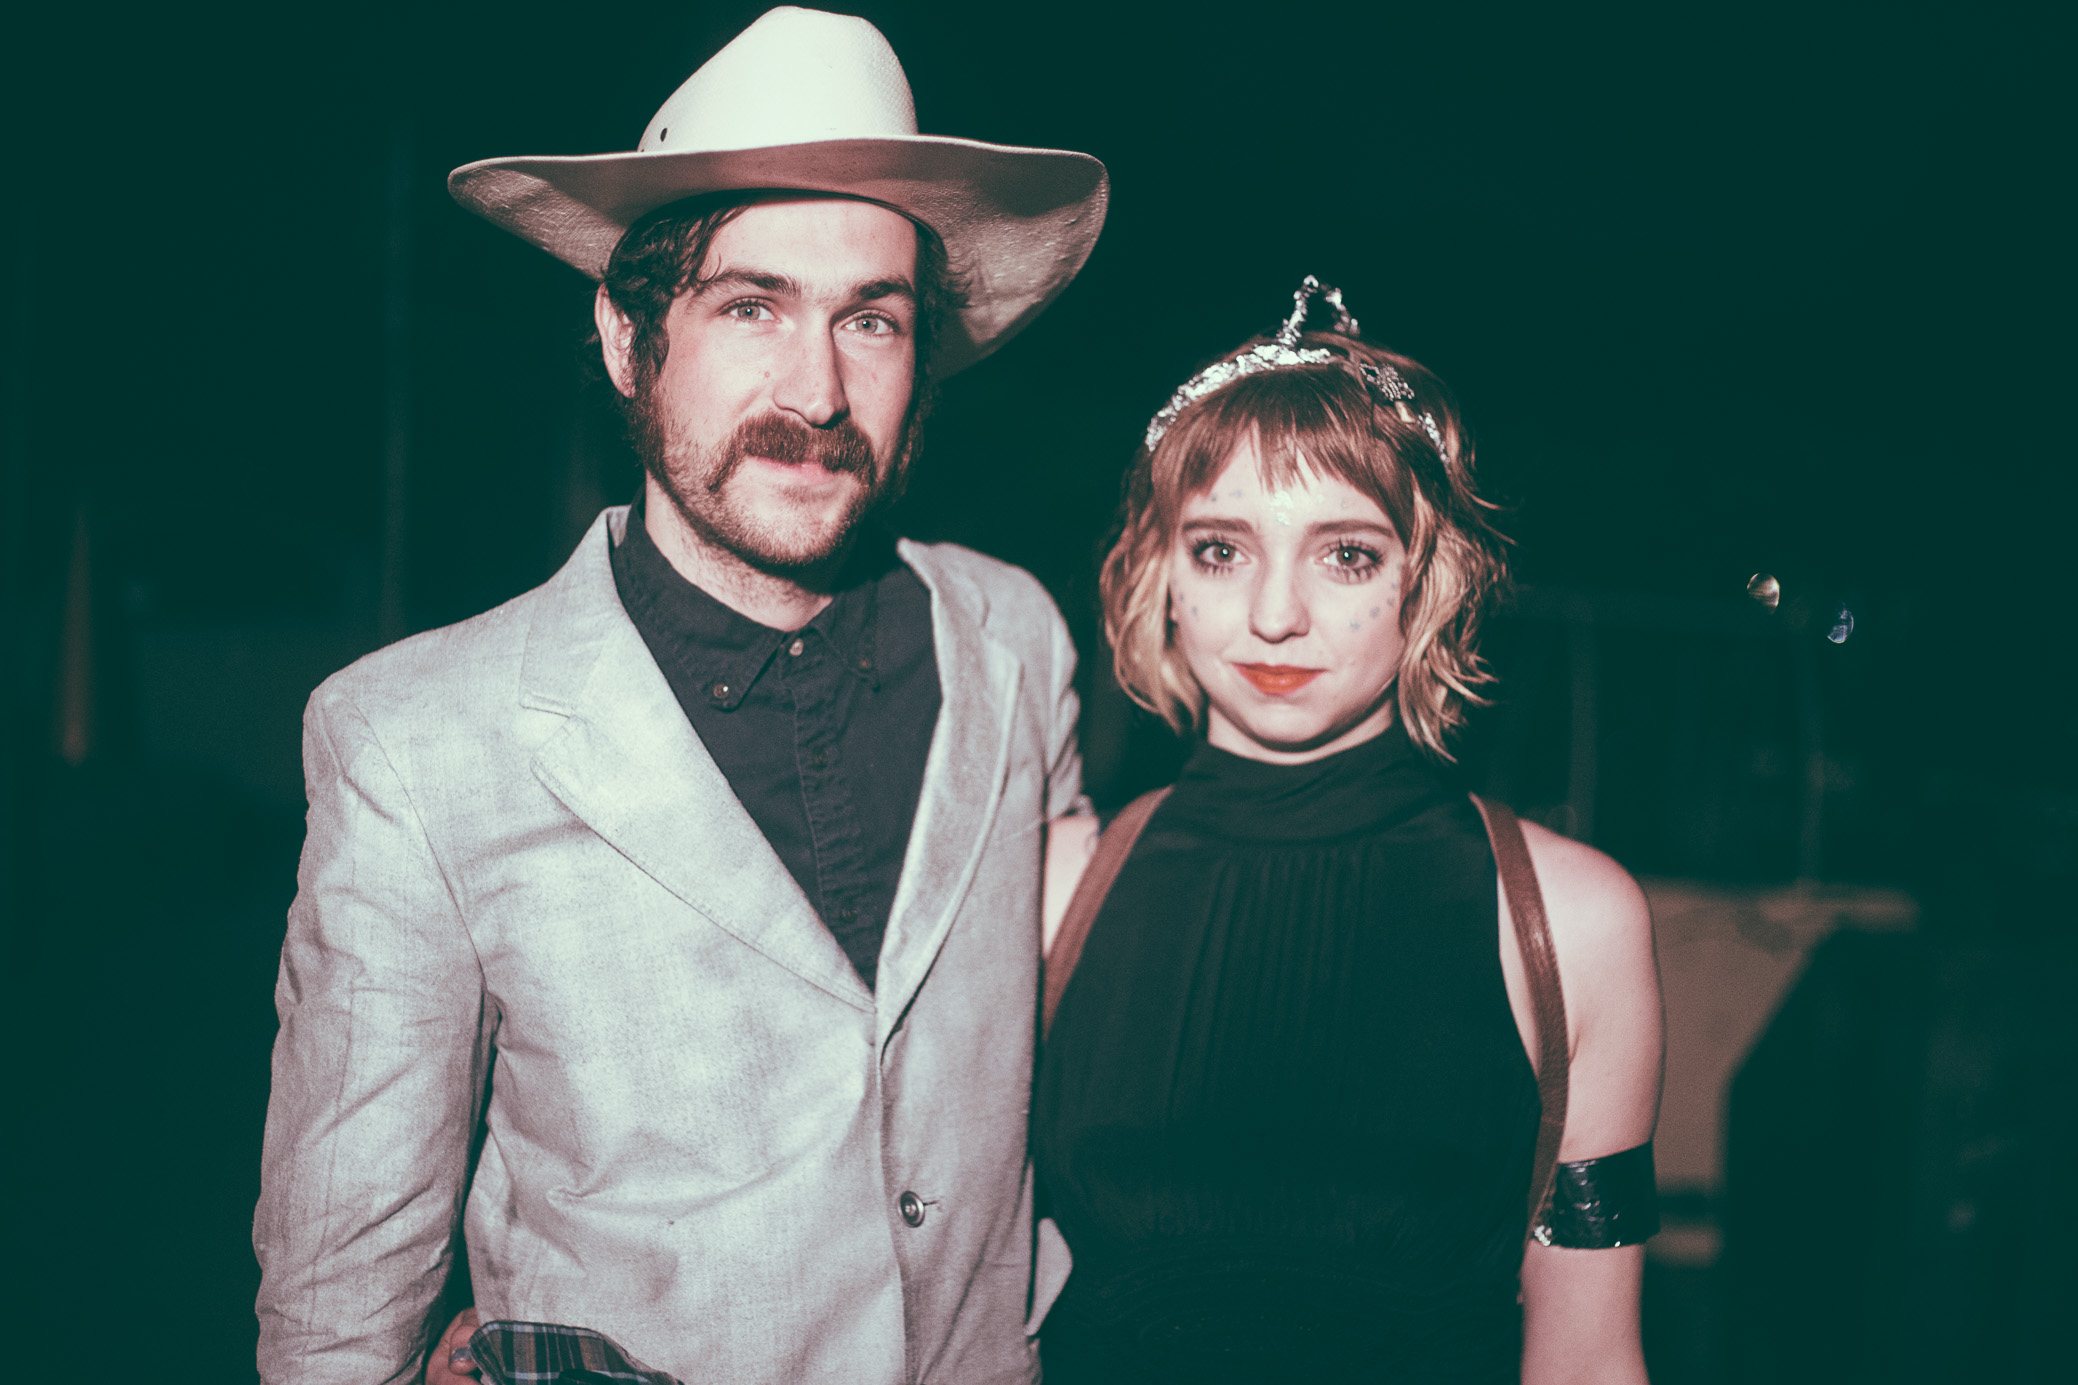 """DIY Birmimgham's """"2017: A Prom Odyssey"""" took place at the Spring Street Firehouse in Birmingham, Alabama on April 8th, 2017. (Photo by David A. Smith/DSmithScenes)"""